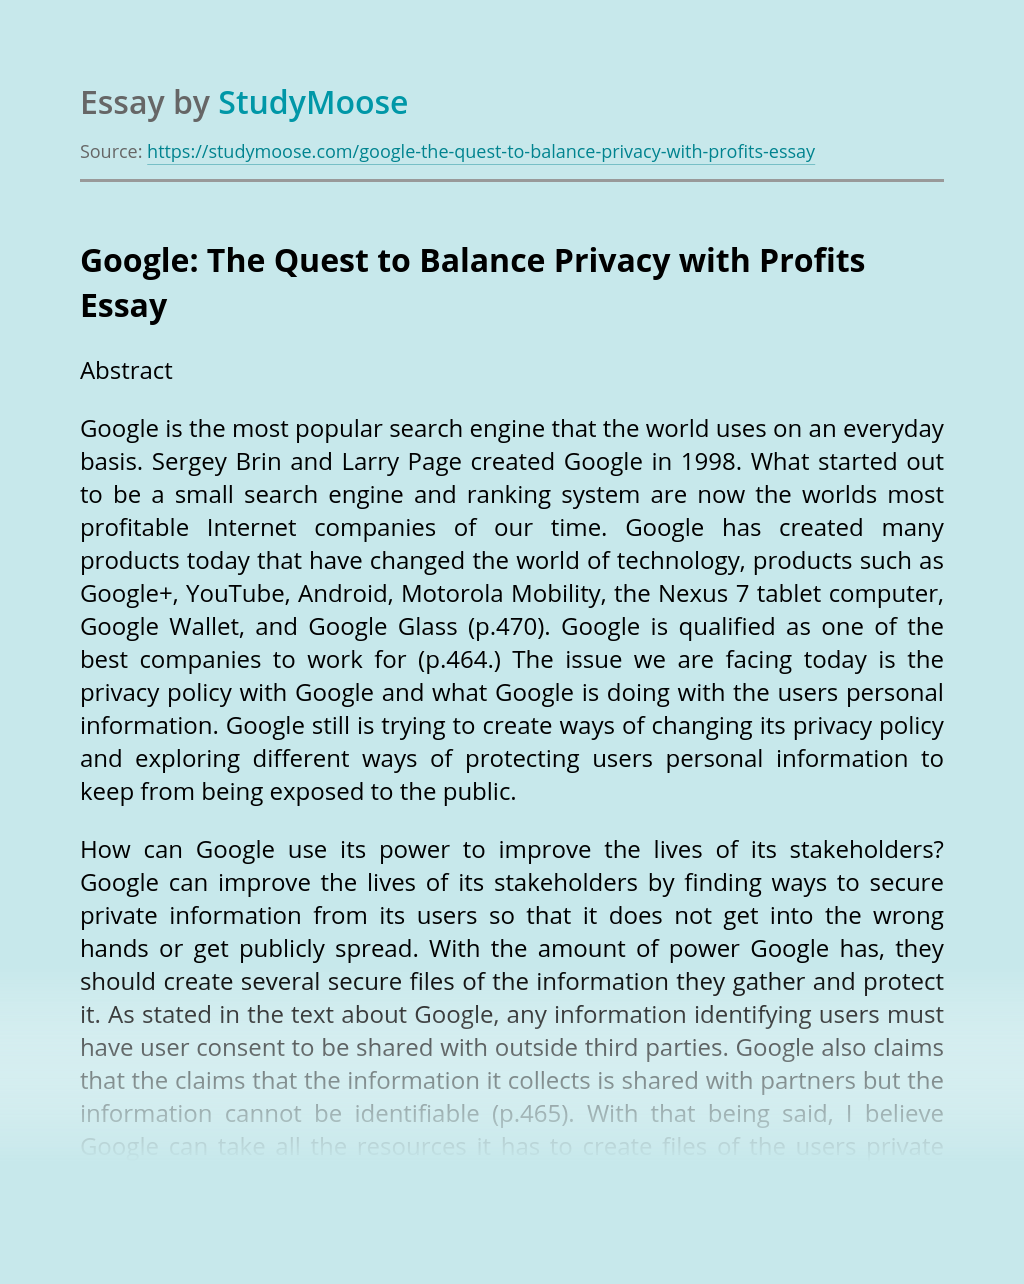 Google: The Quest to Balance Privacy with Profits